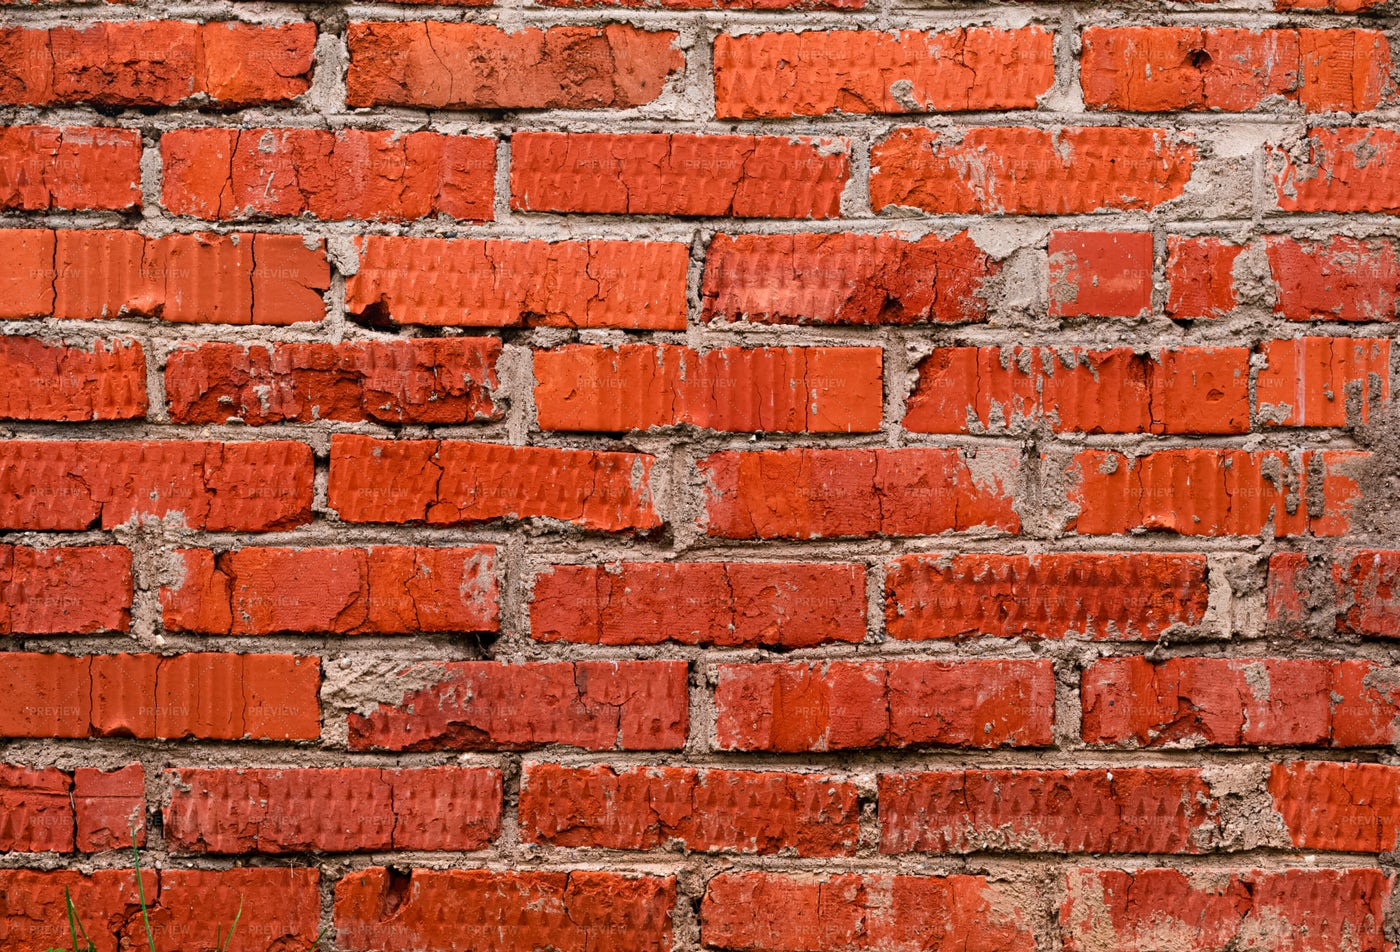 Uneven Red Brick Wall: Stock Photos